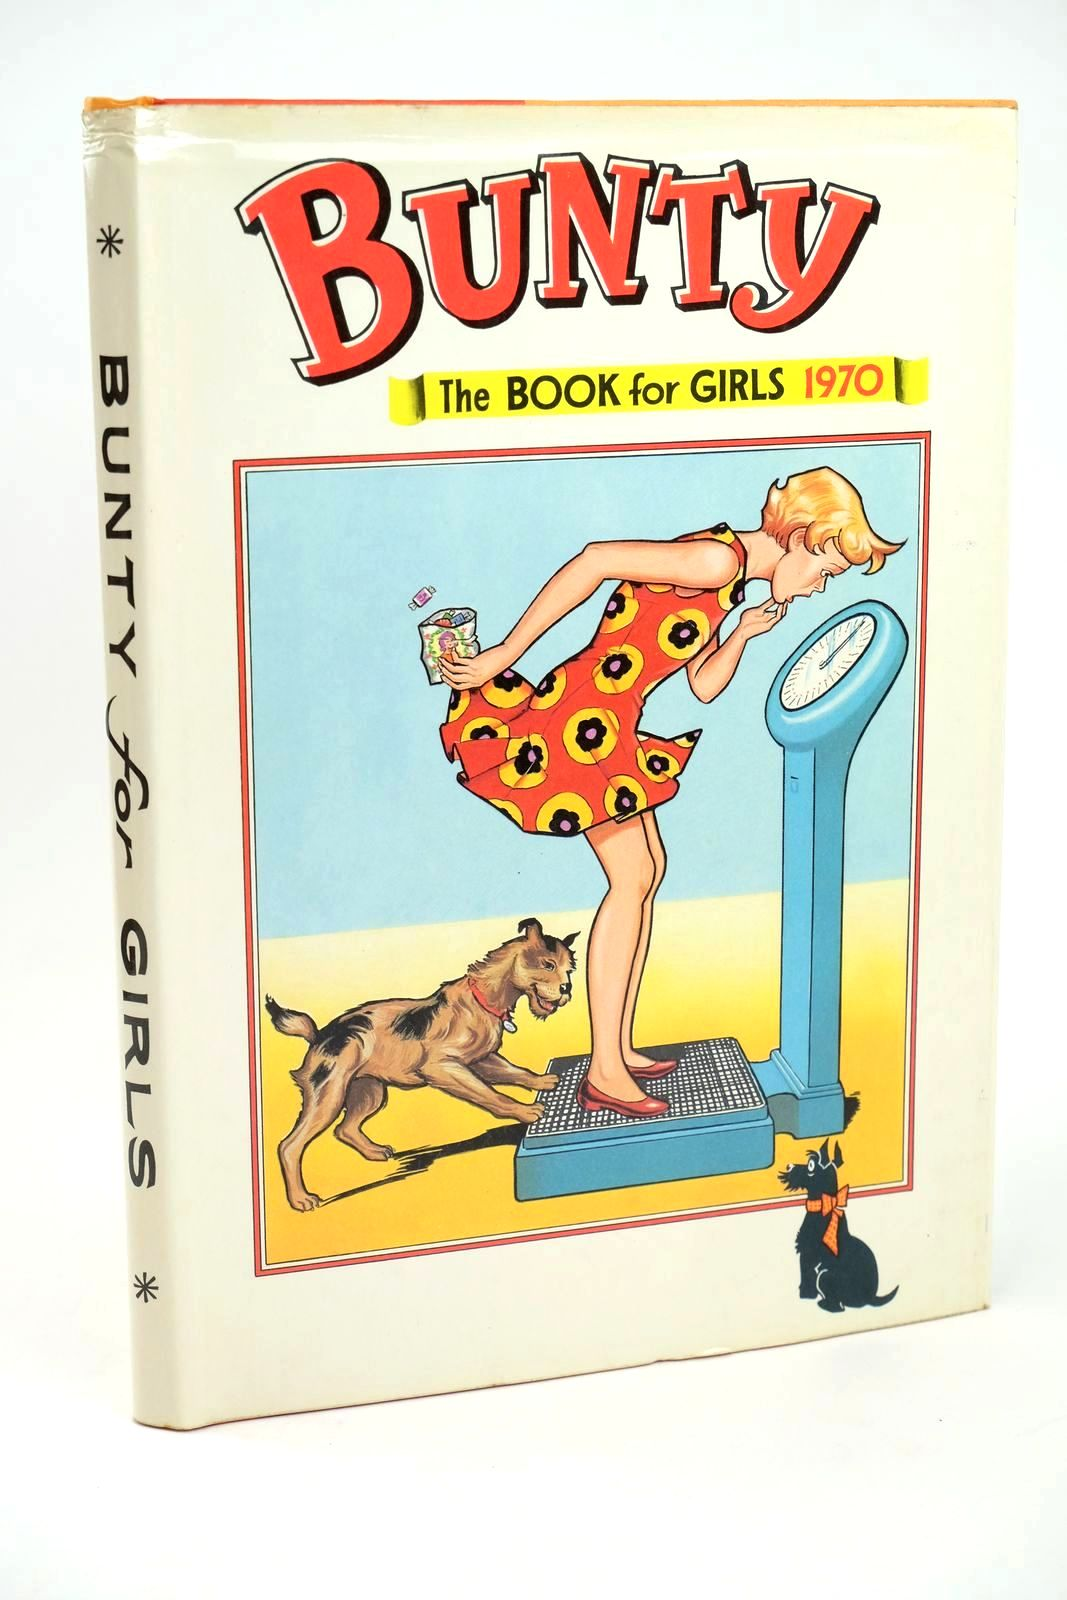 Photo of BUNTY FOR GIRLS 1970 published by D.C. Thomson & Co Ltd. (STOCK CODE: 1318508)  for sale by Stella & Rose's Books